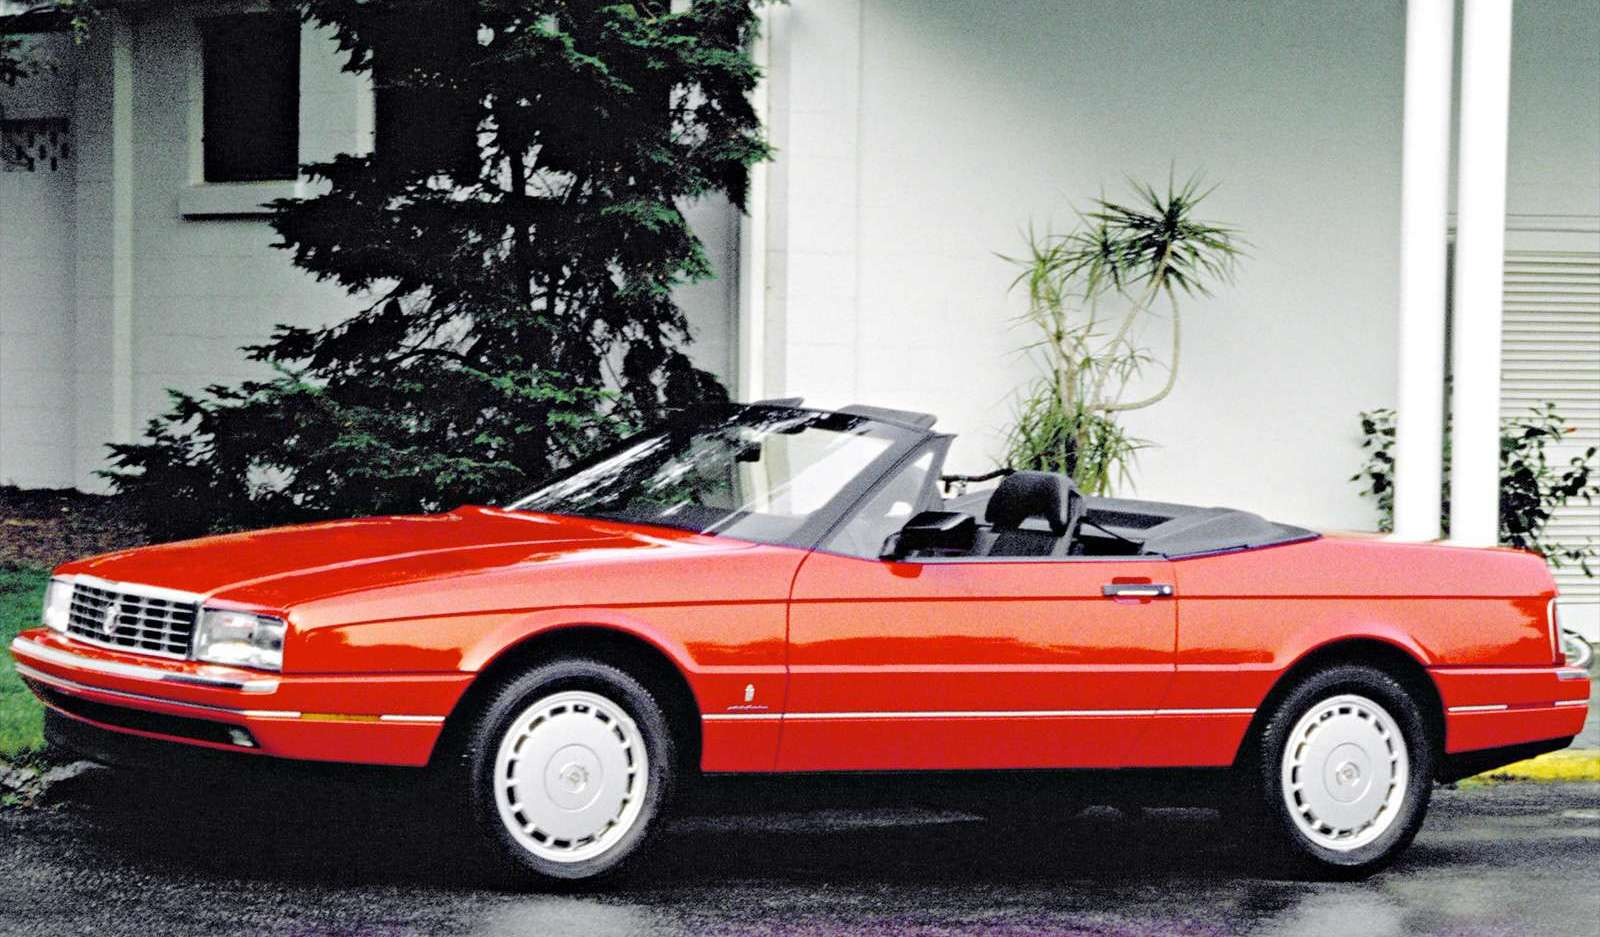 1989 Cadillac Allante red convertible